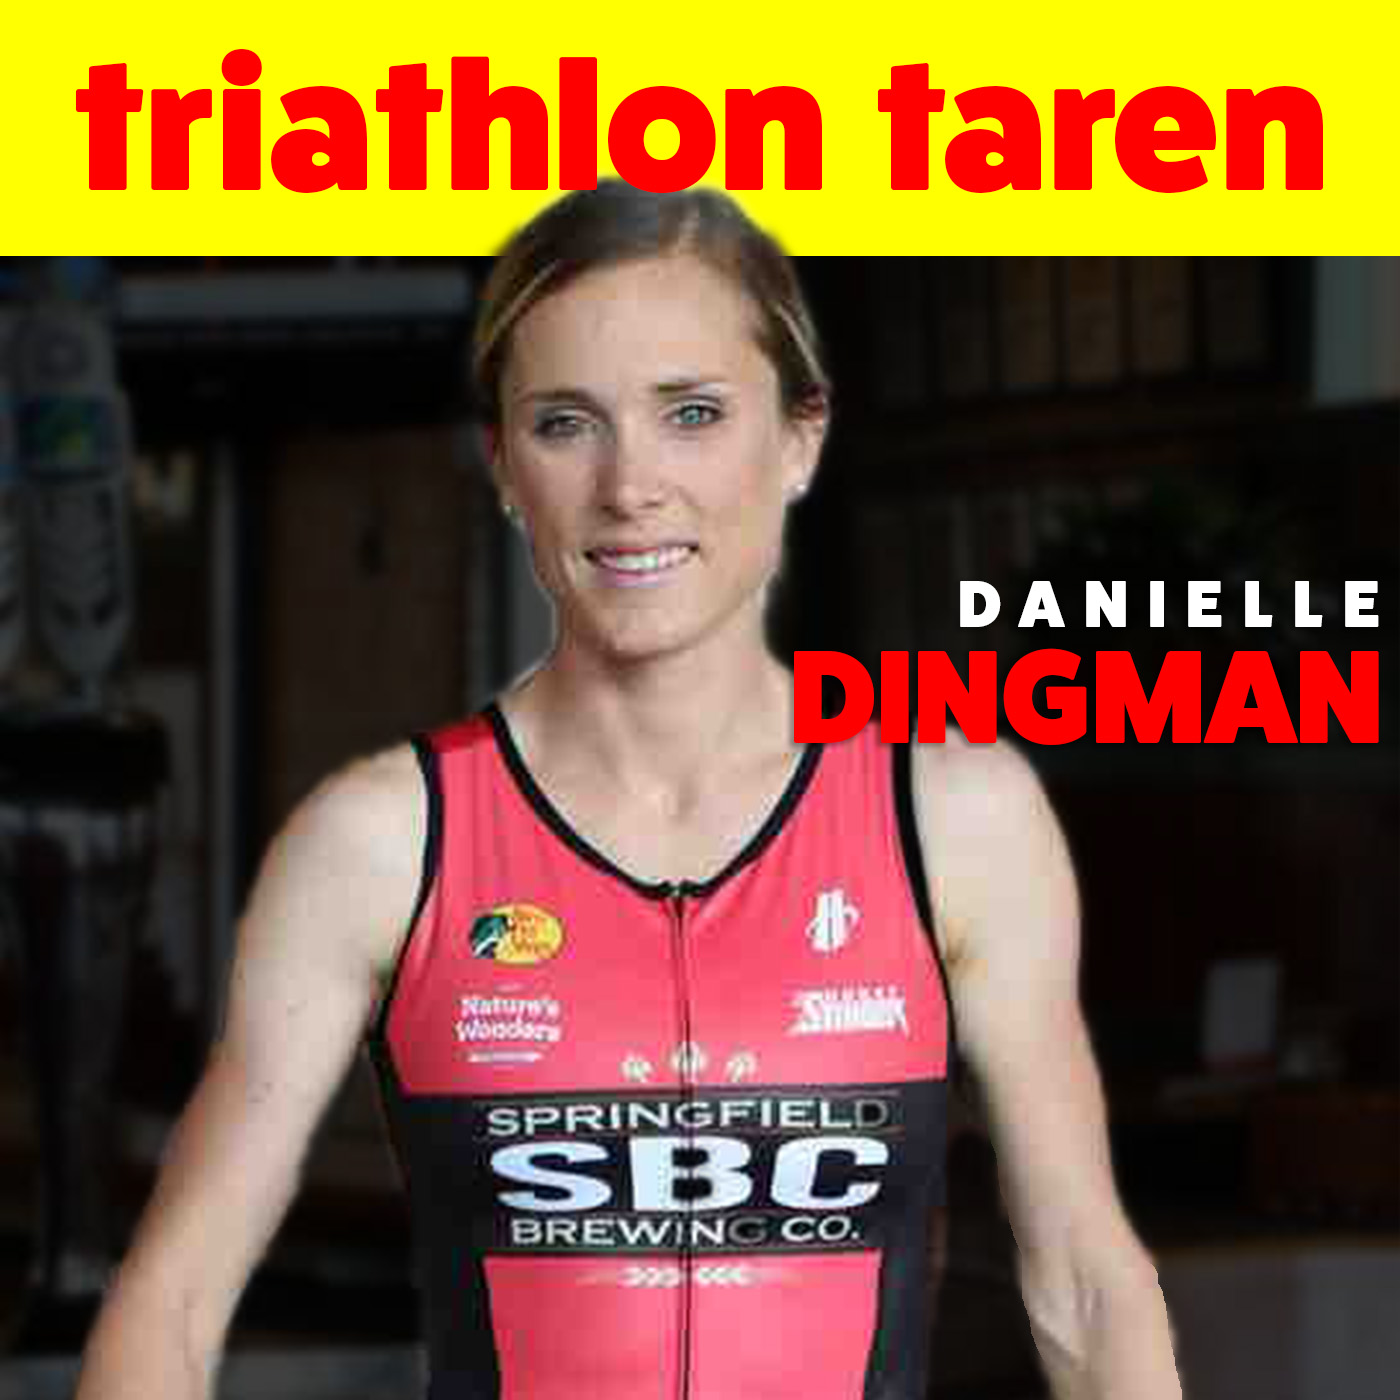 Danielle Dingman Triathlon Taren Podcast